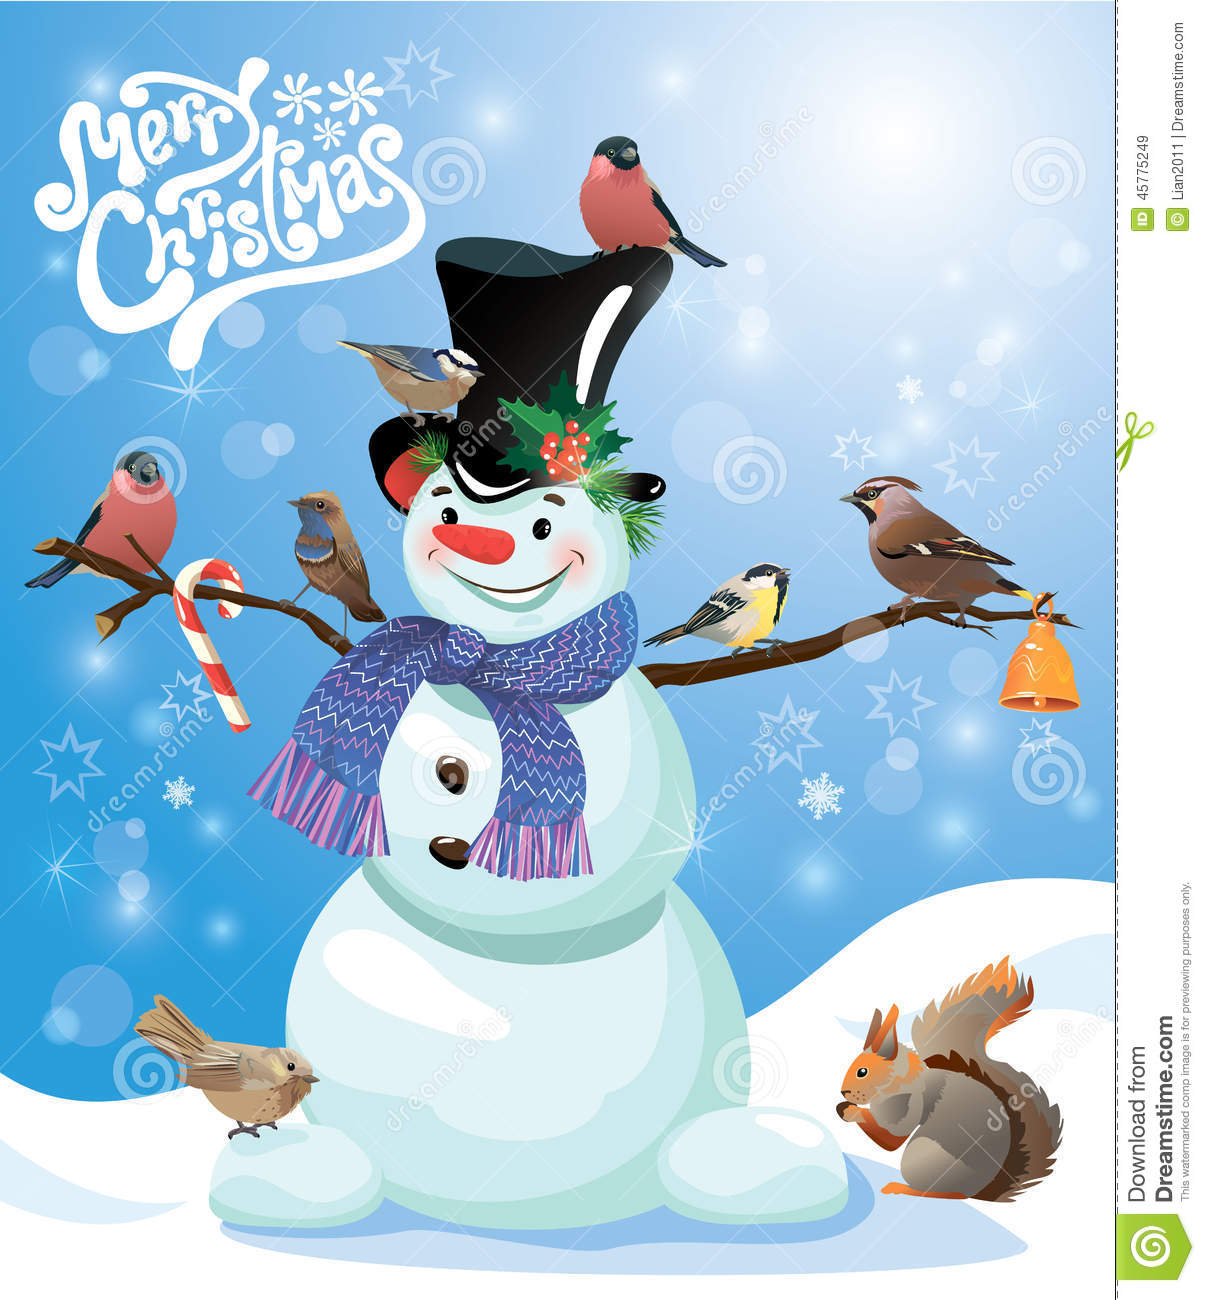 Card With Funny Snowman And Birds On Blue Snow Background Stock Vector - Imag...